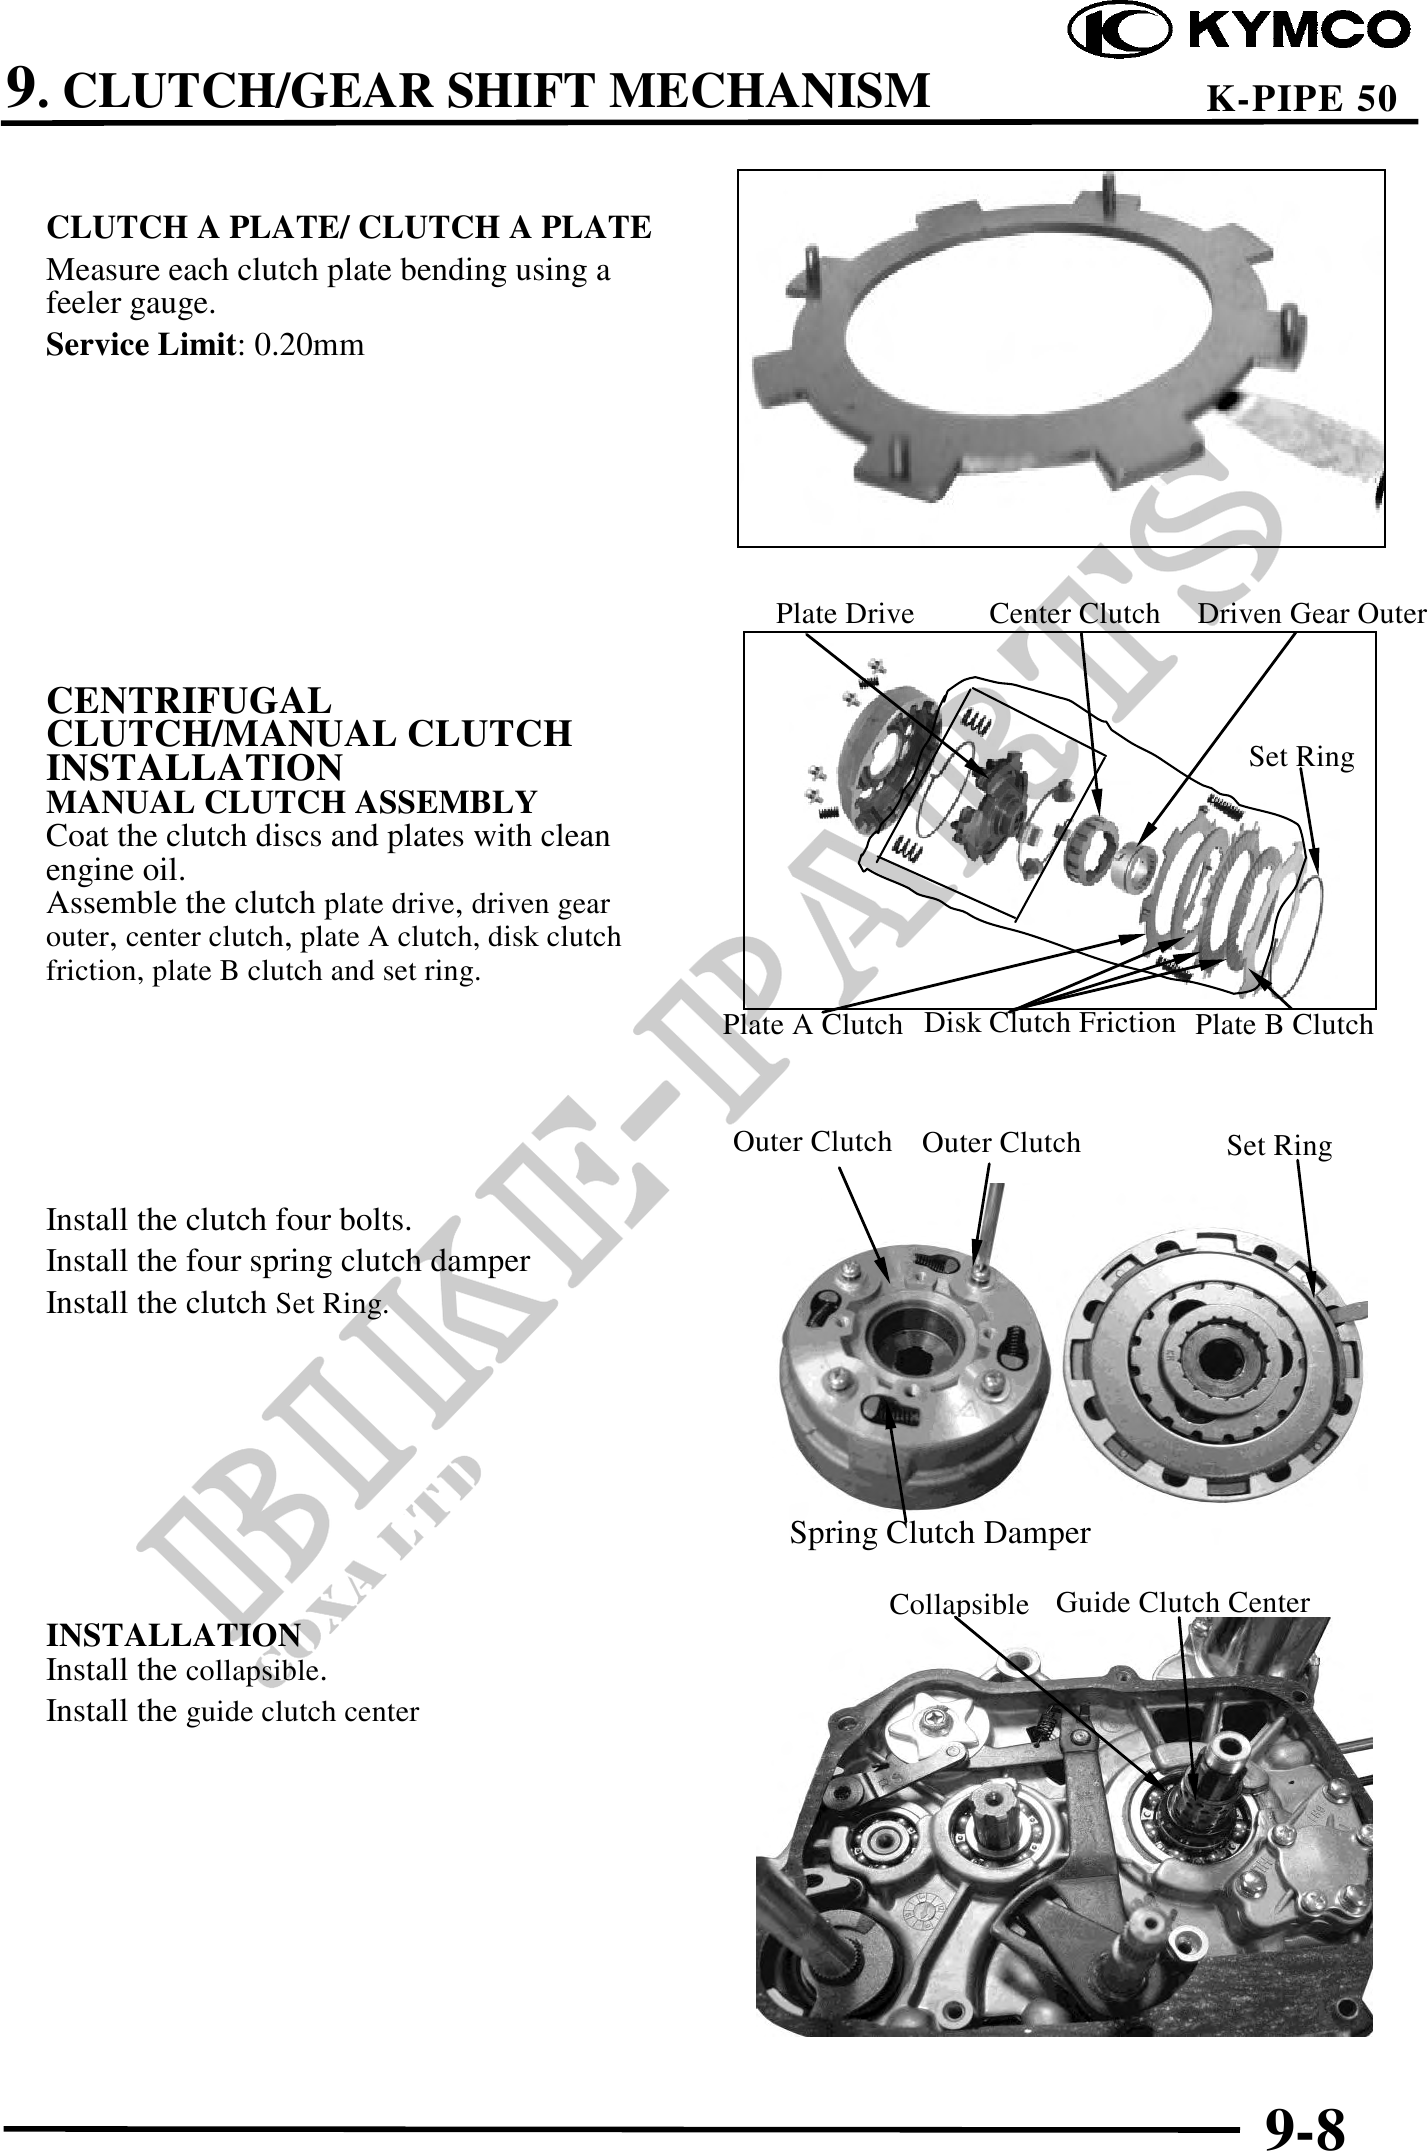 KYMCO - Online Genuine Spare Parts Catalog